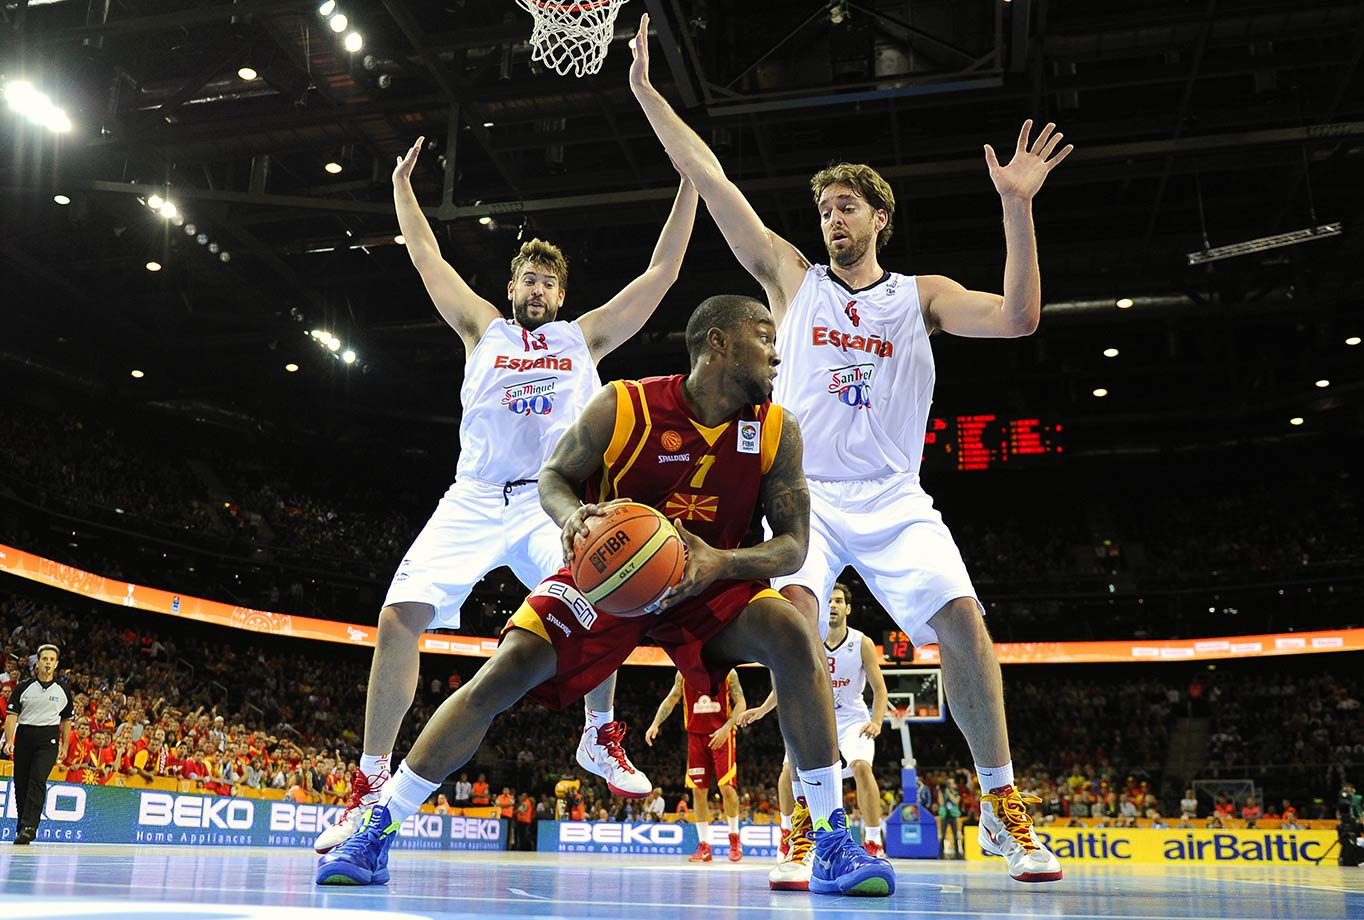 EuroBasket (European Basketball Championship) — Spain vs. Macedonia